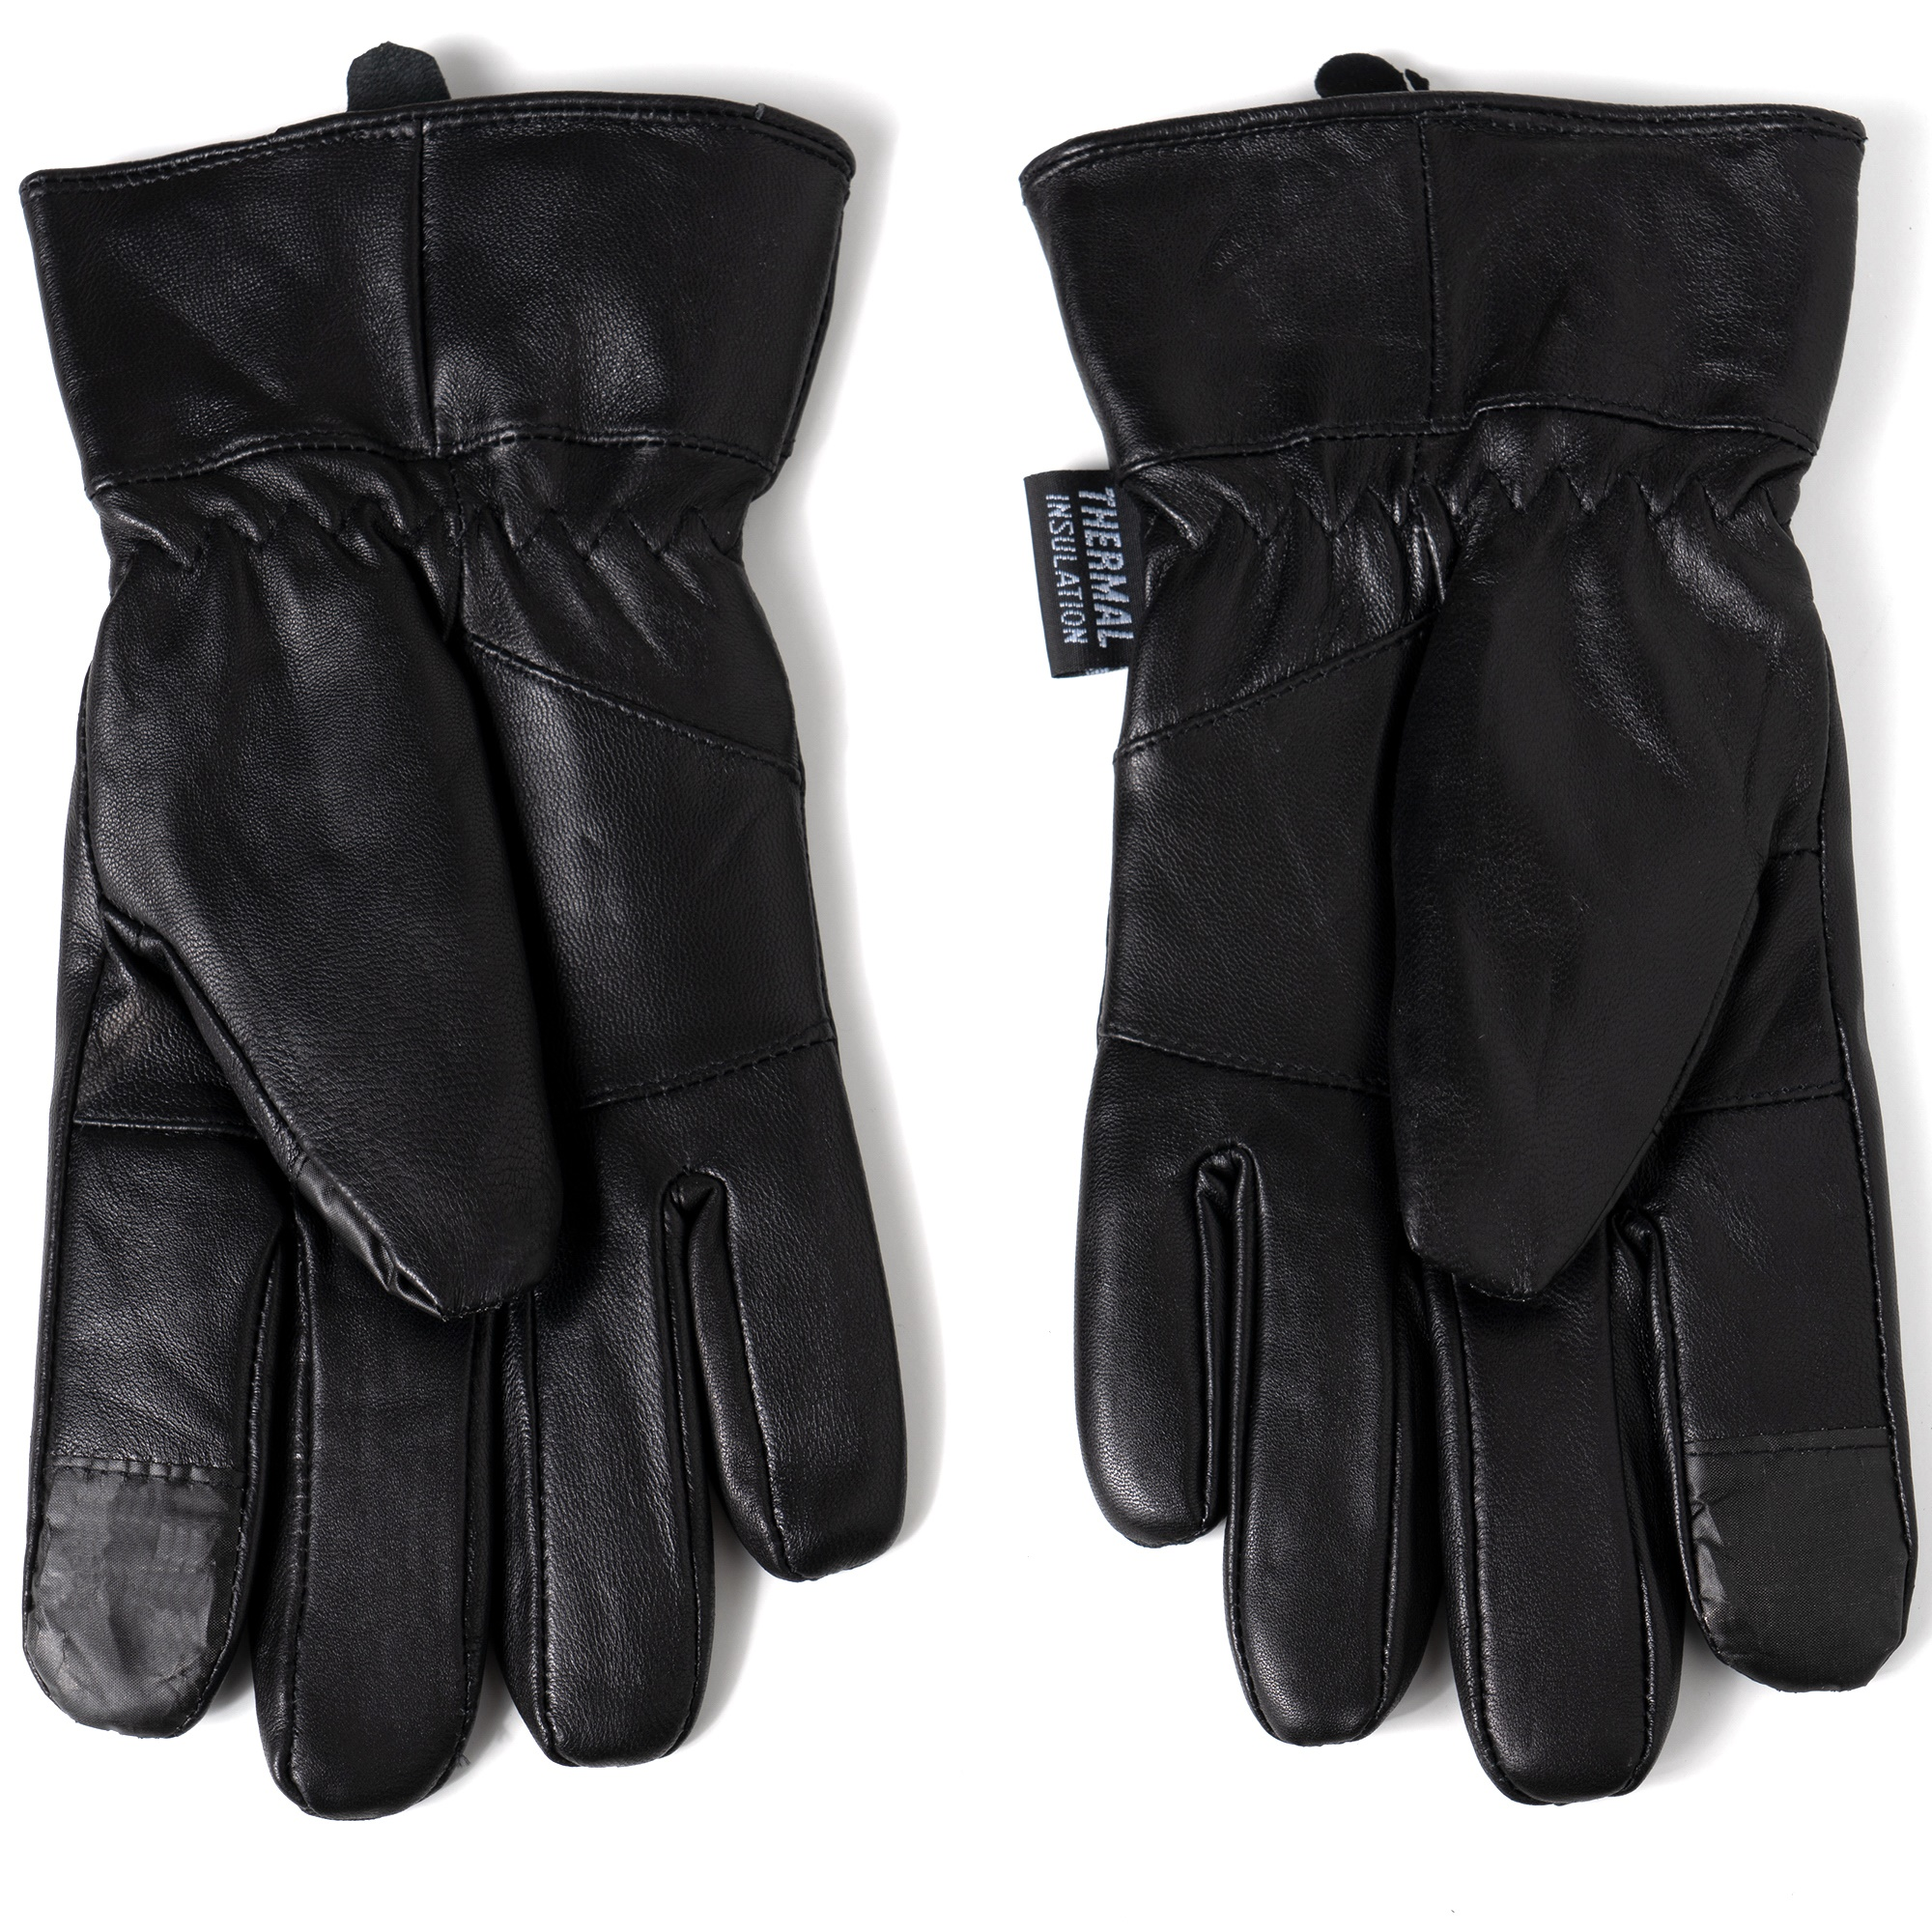 Alpine-Swiss-Mens-Touch-Screen-Gloves-Leather-Thermal-Lined-Phone-Texting-Gloves thumbnail 17